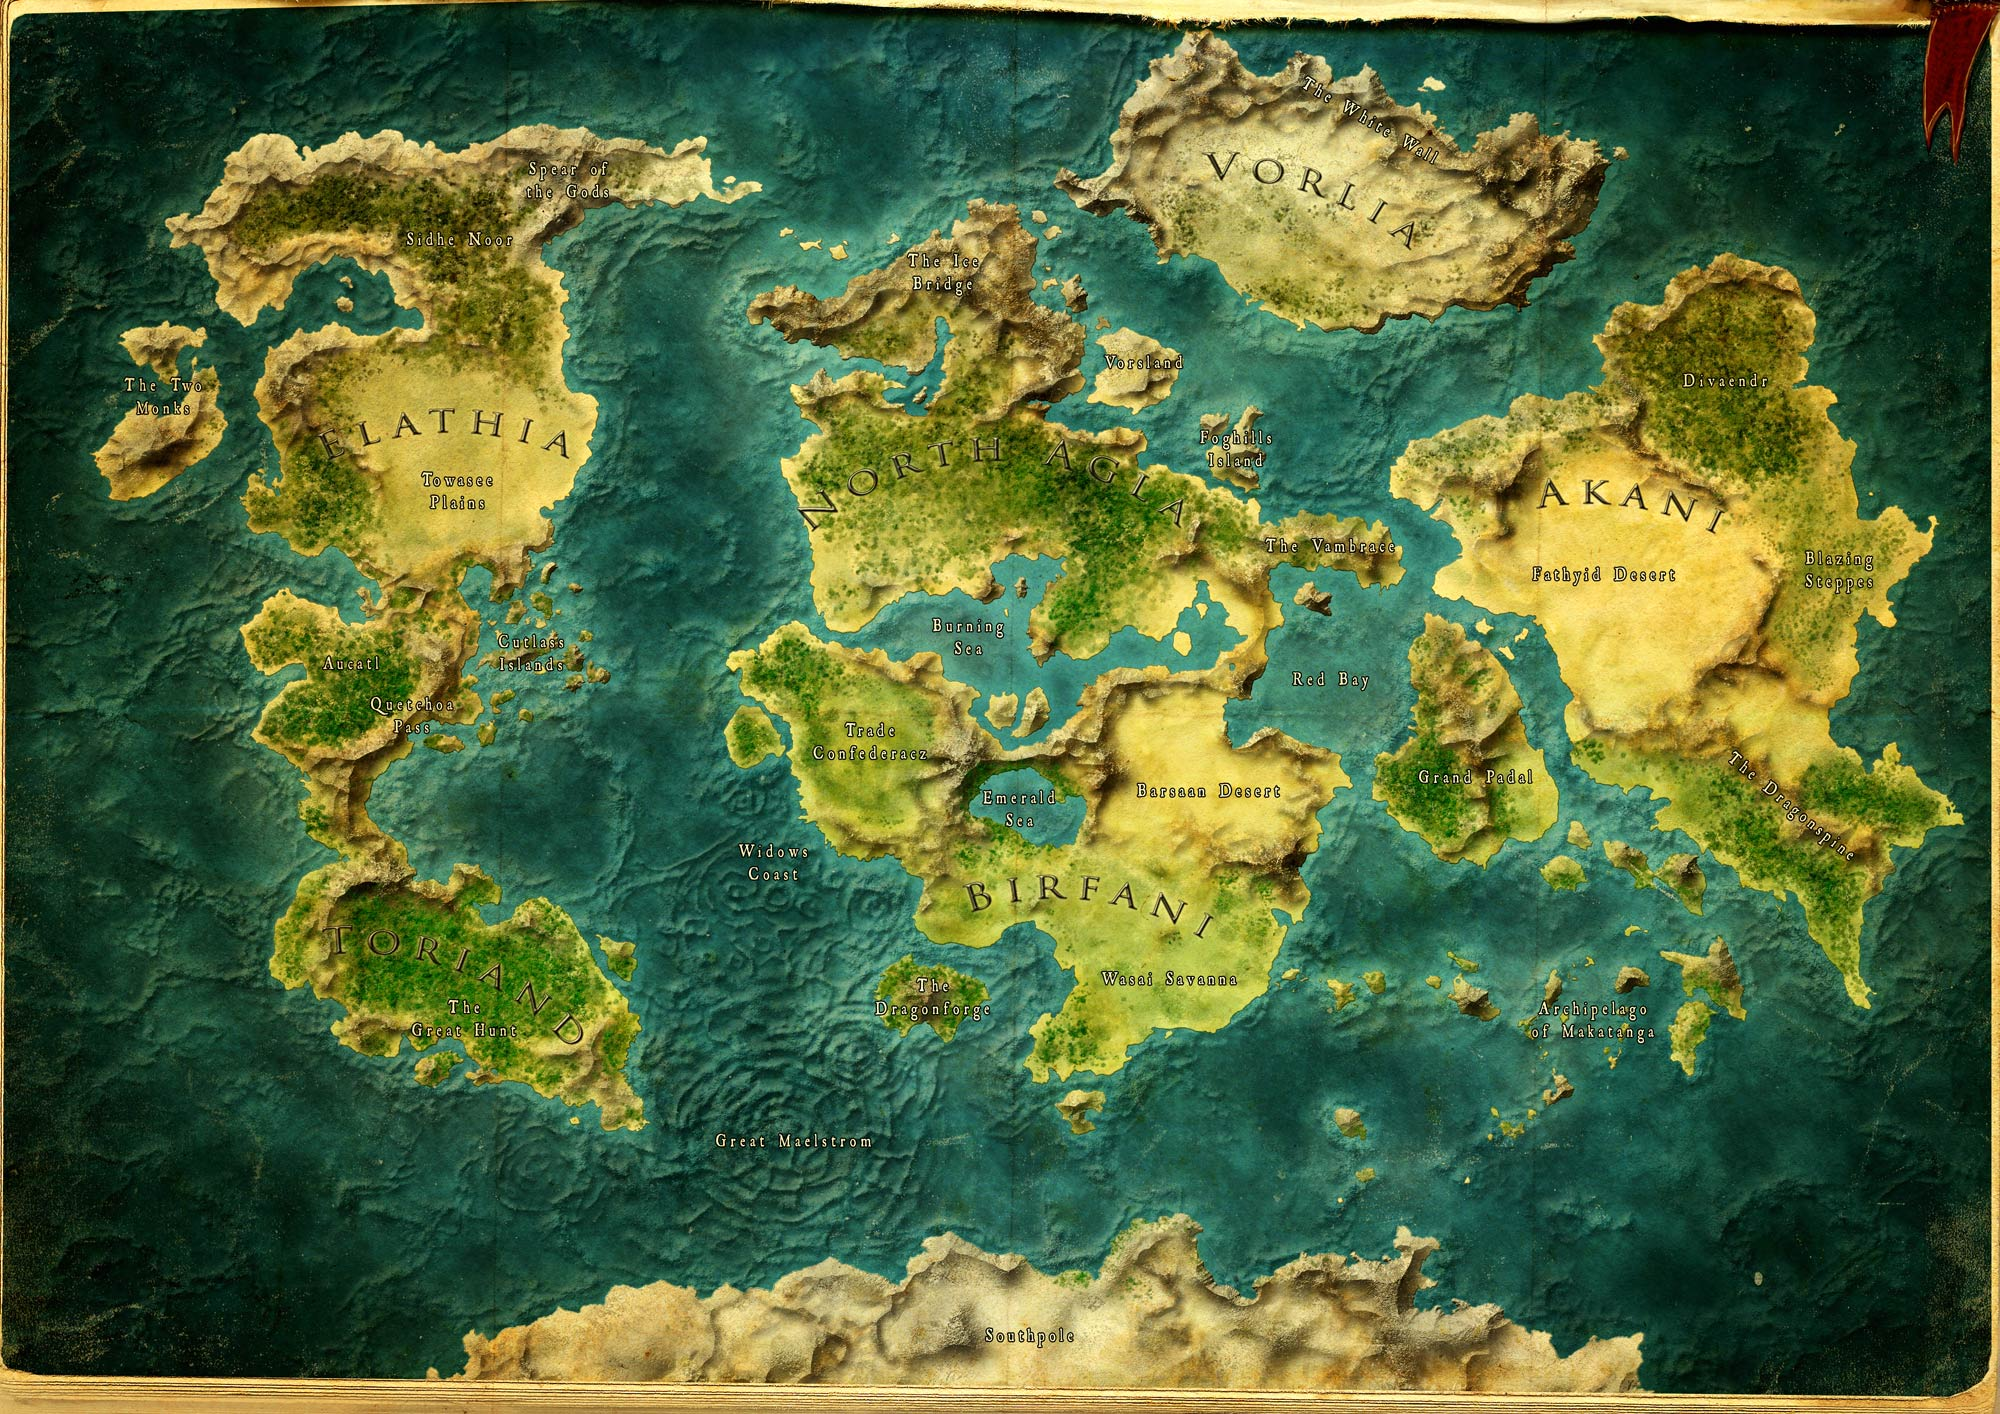 Fantasy world map tumblr fantasy world map tumblr photo8 gumiabroncs Gallery